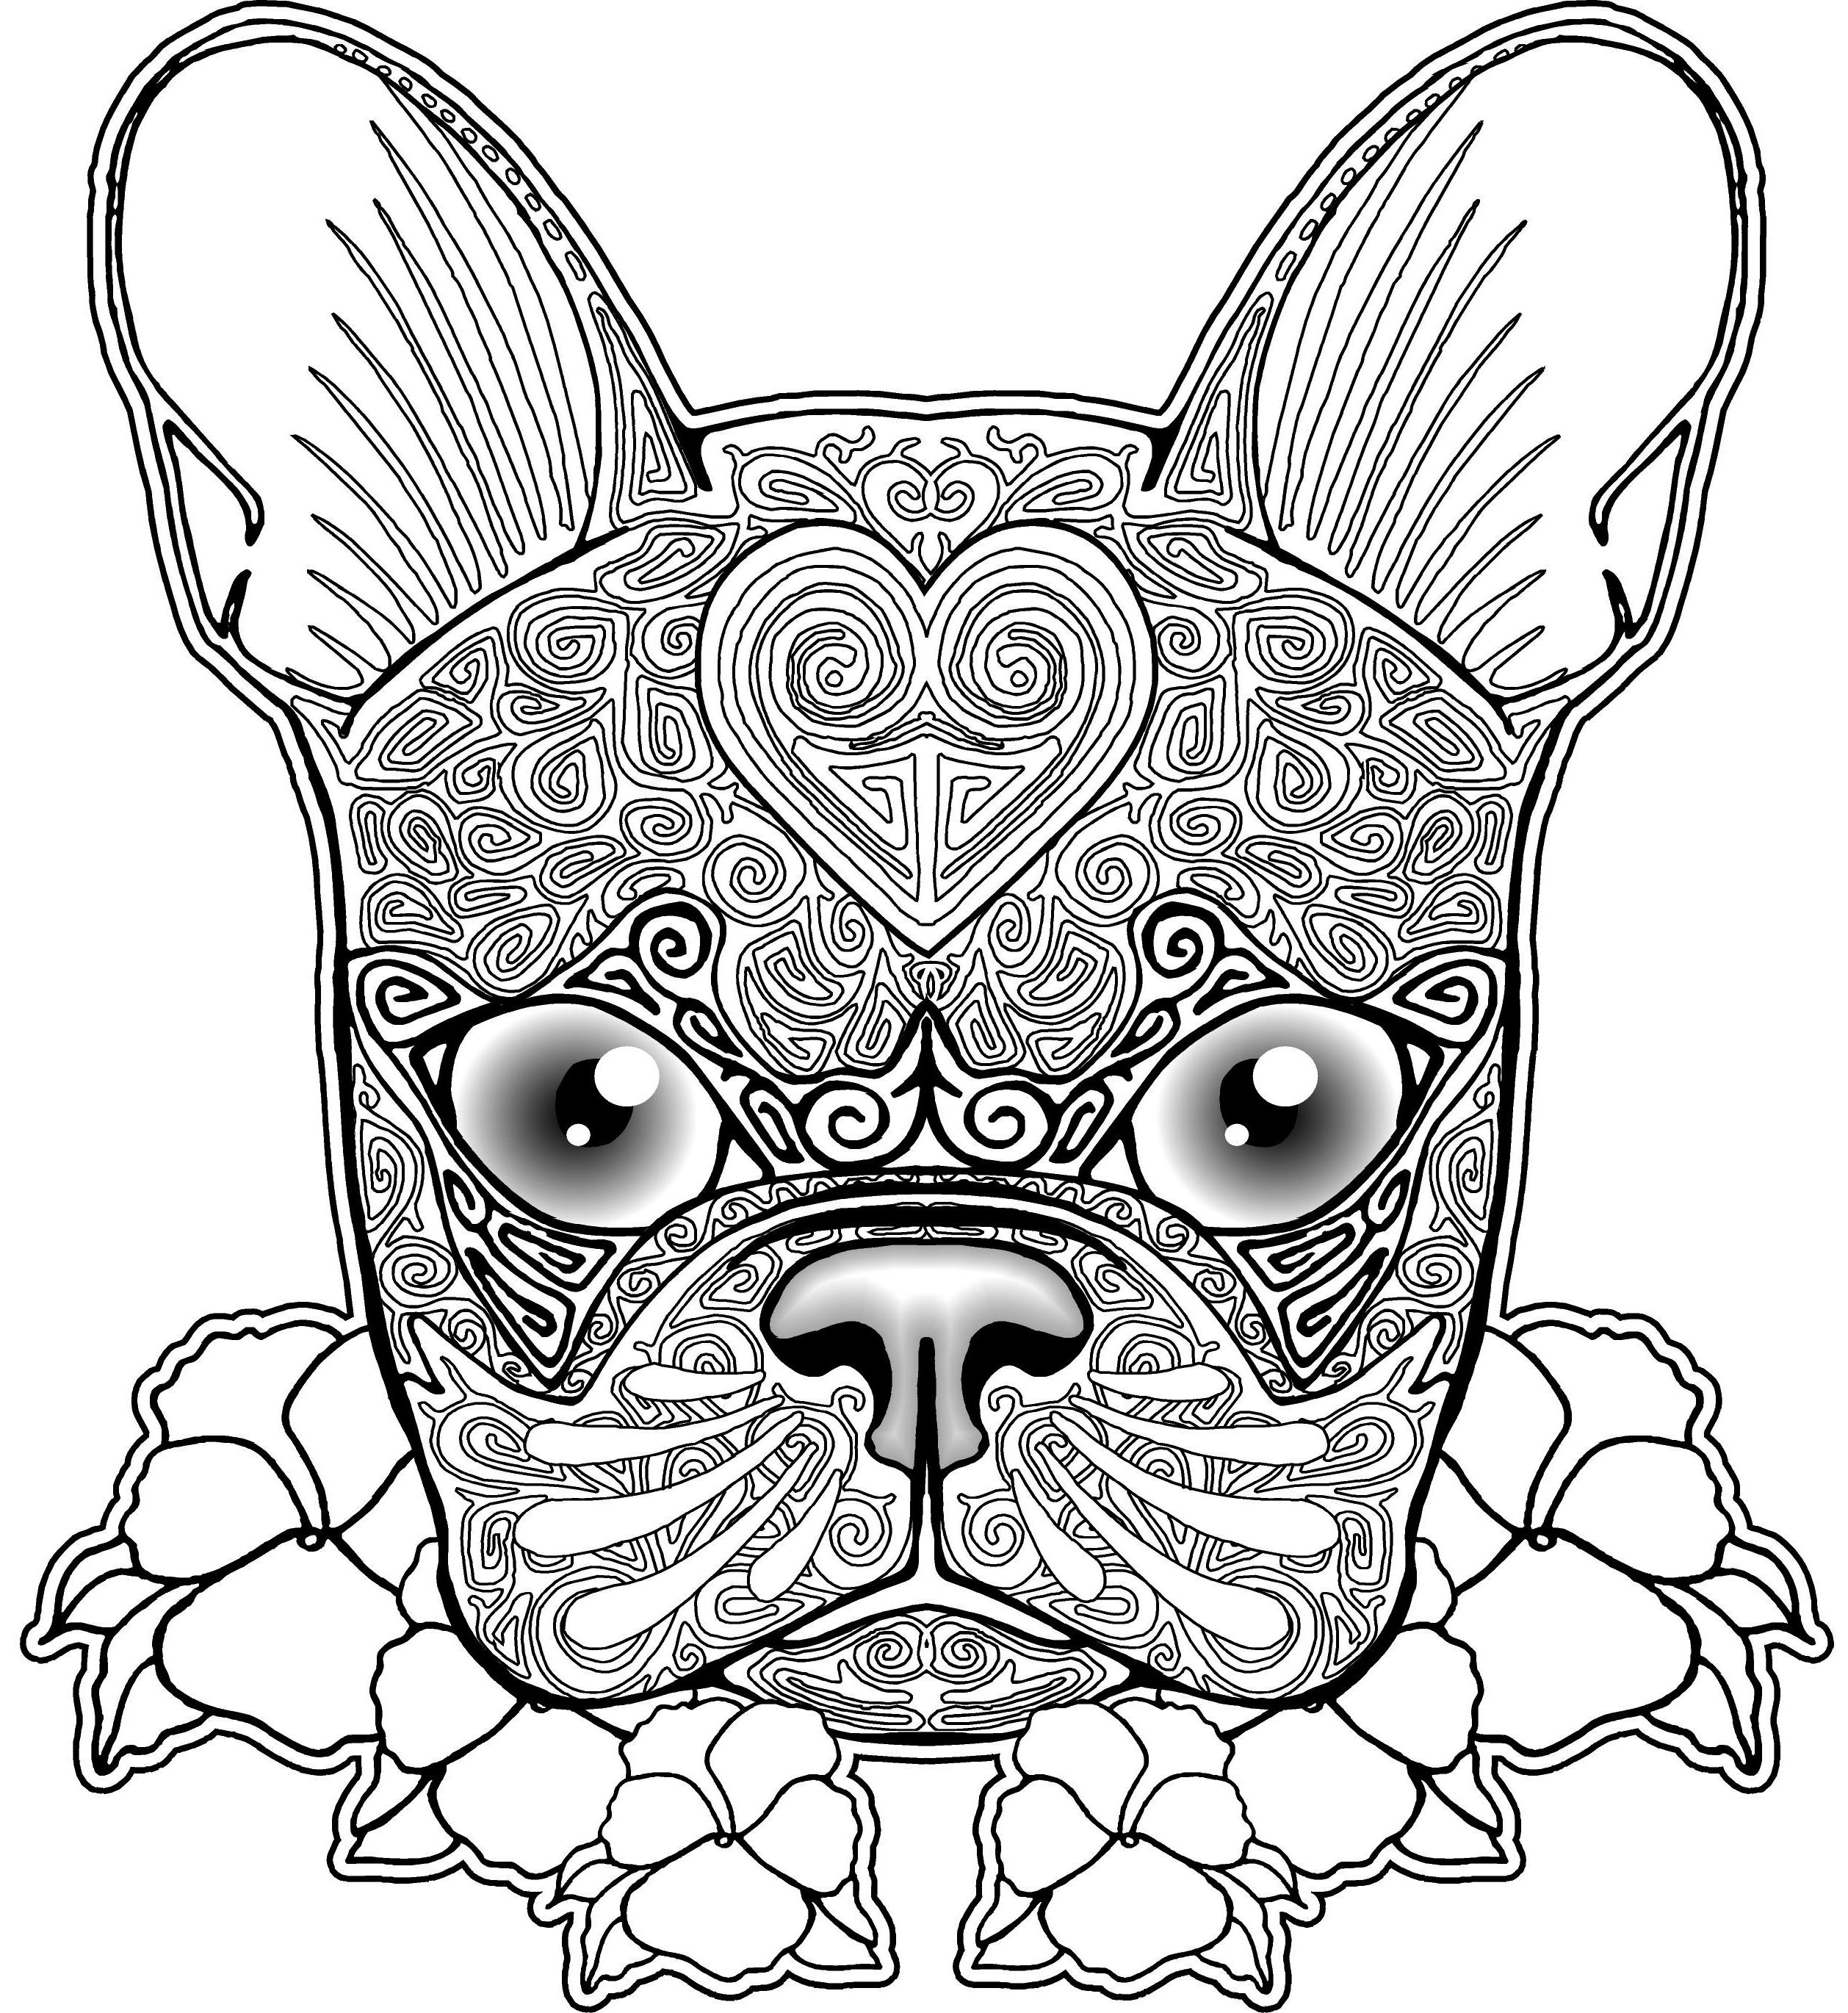 colouring pages of dog dog to download for free dogs kids coloring pages colouring of dog pages